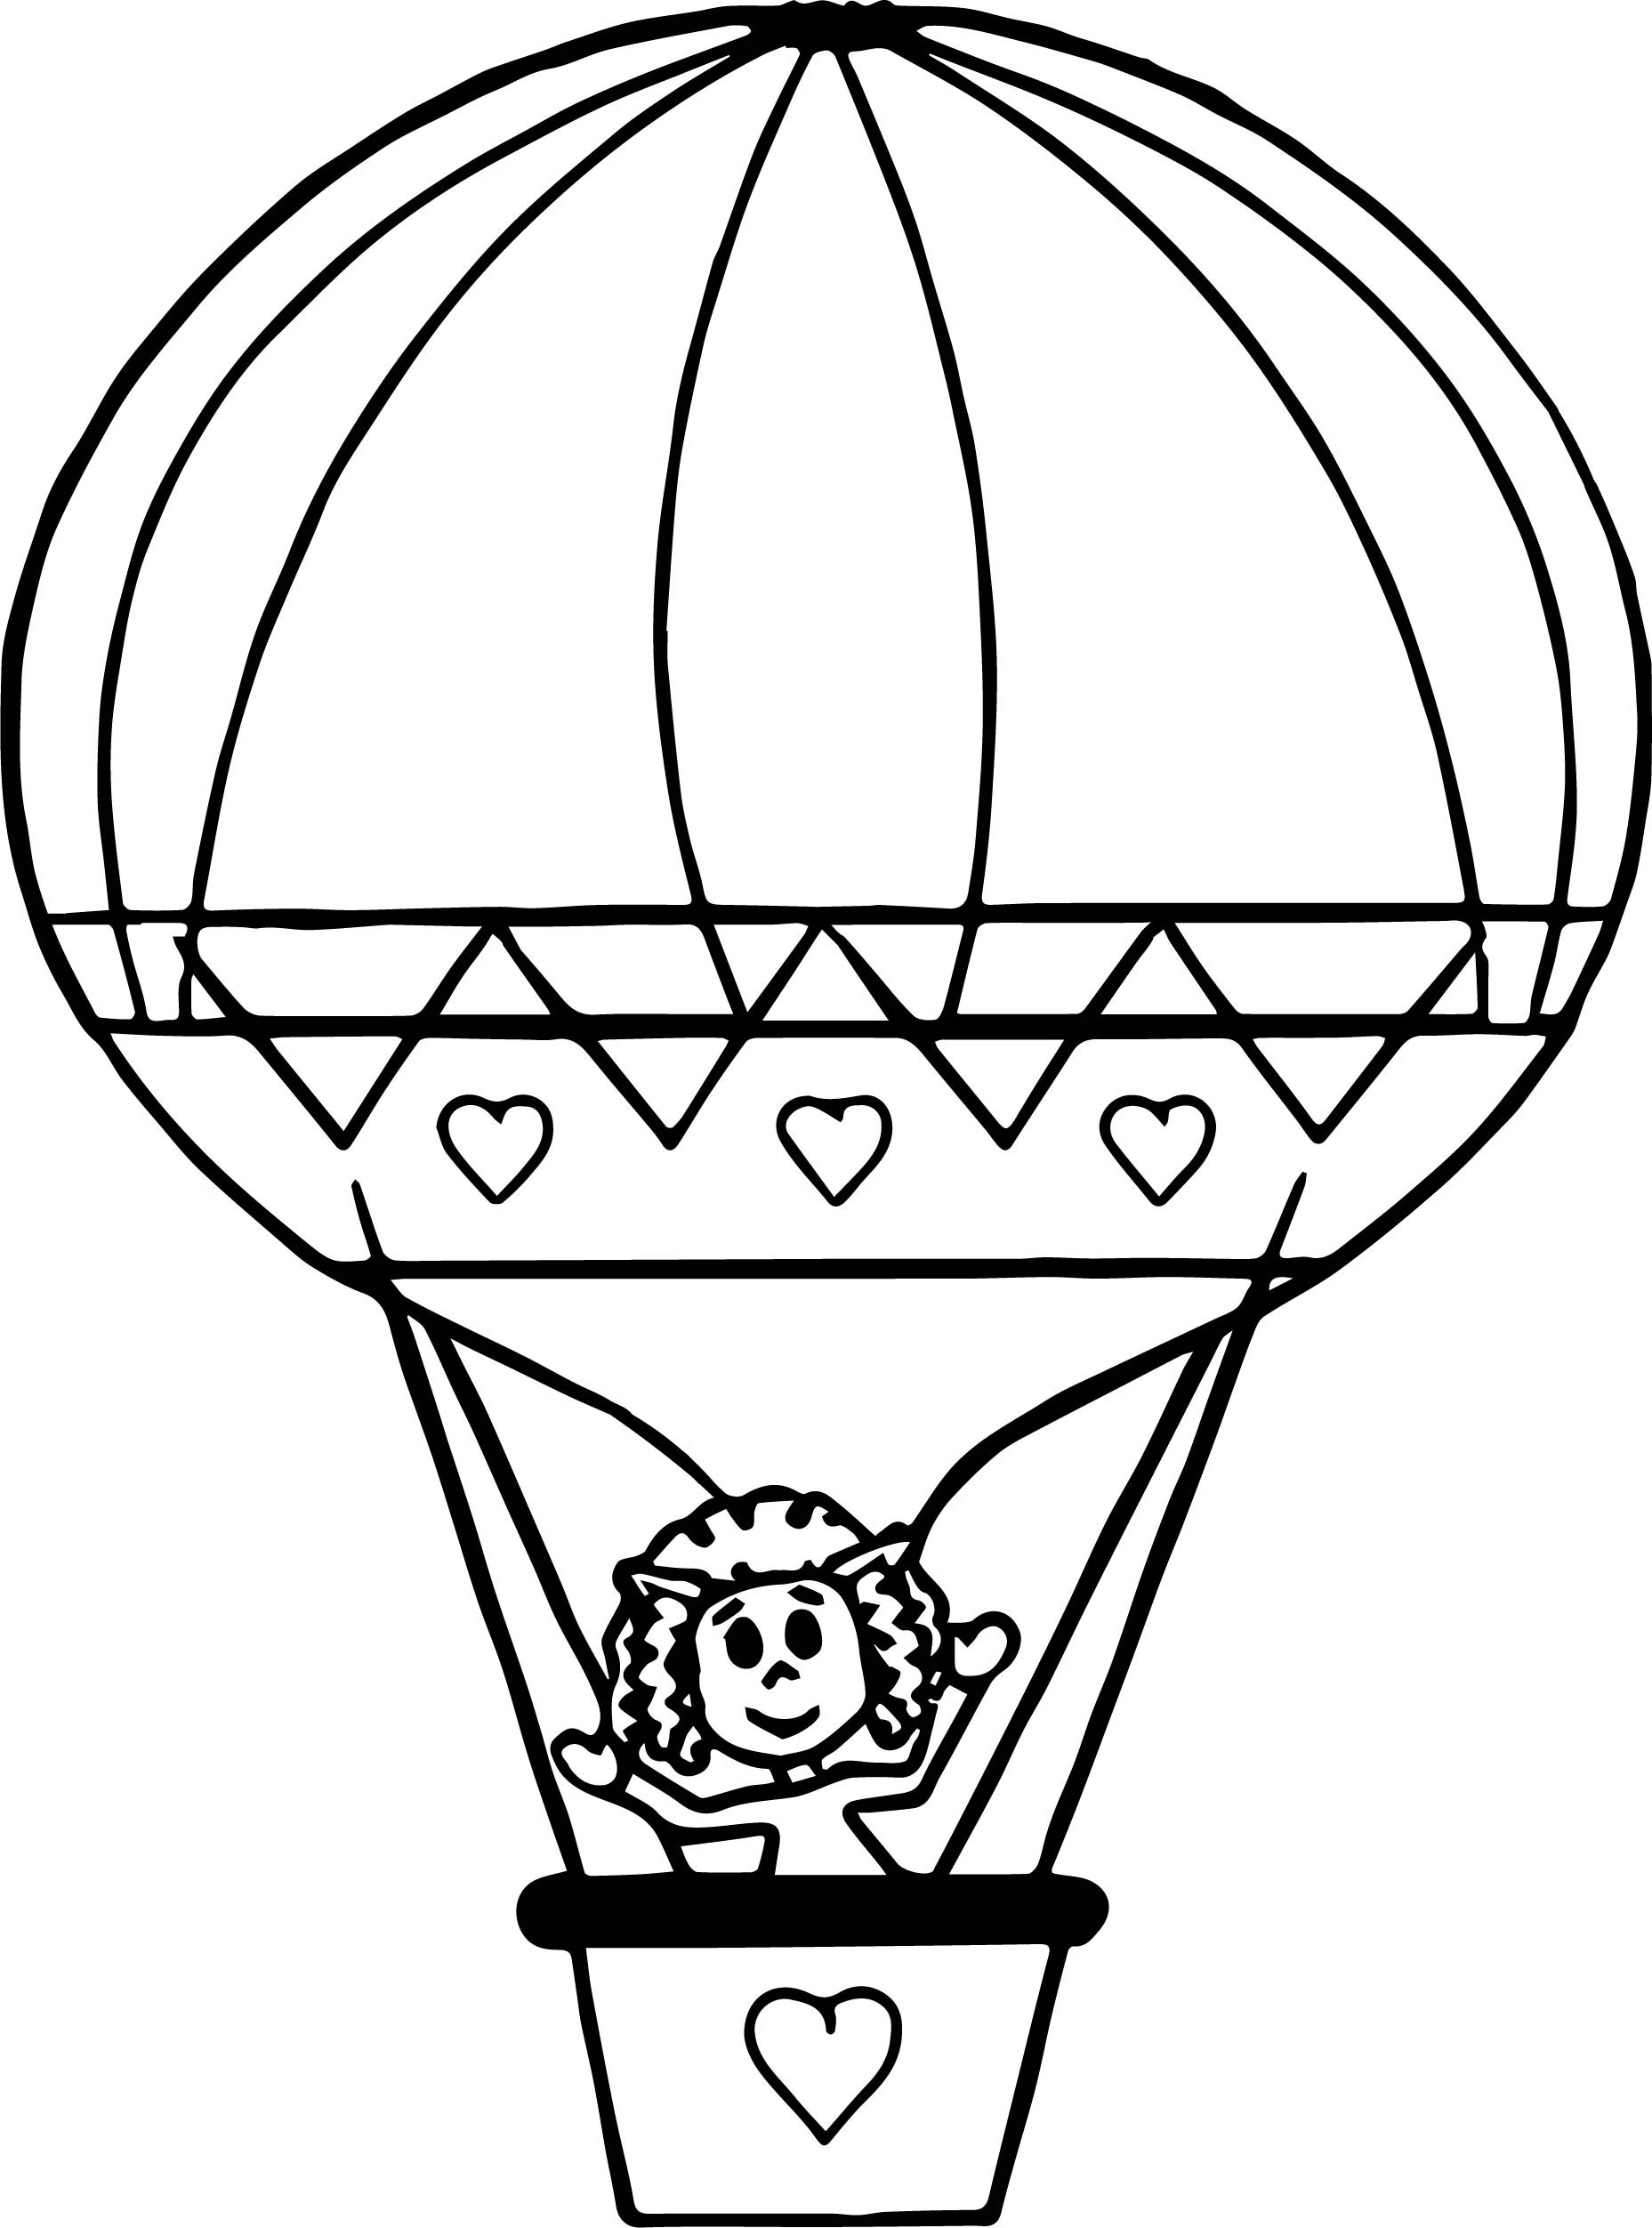 hot air balloon coloring pages free printable hot air balloon coloring pages for kids coloring hot balloon pages air